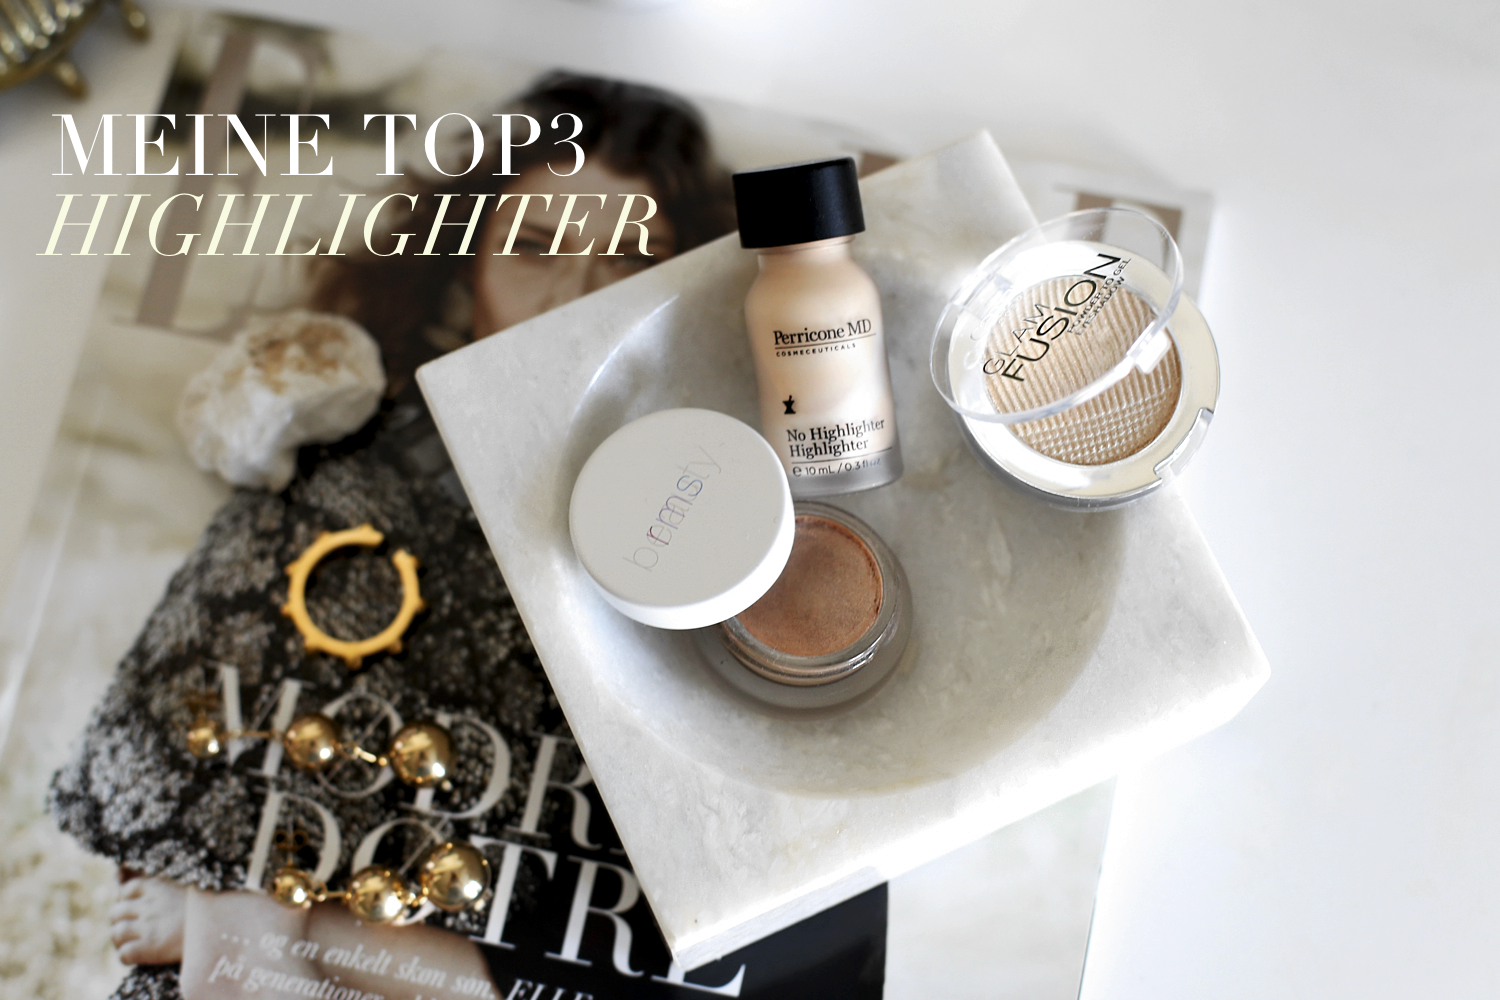 Get the Glow: Meine TOP3 Highlighter